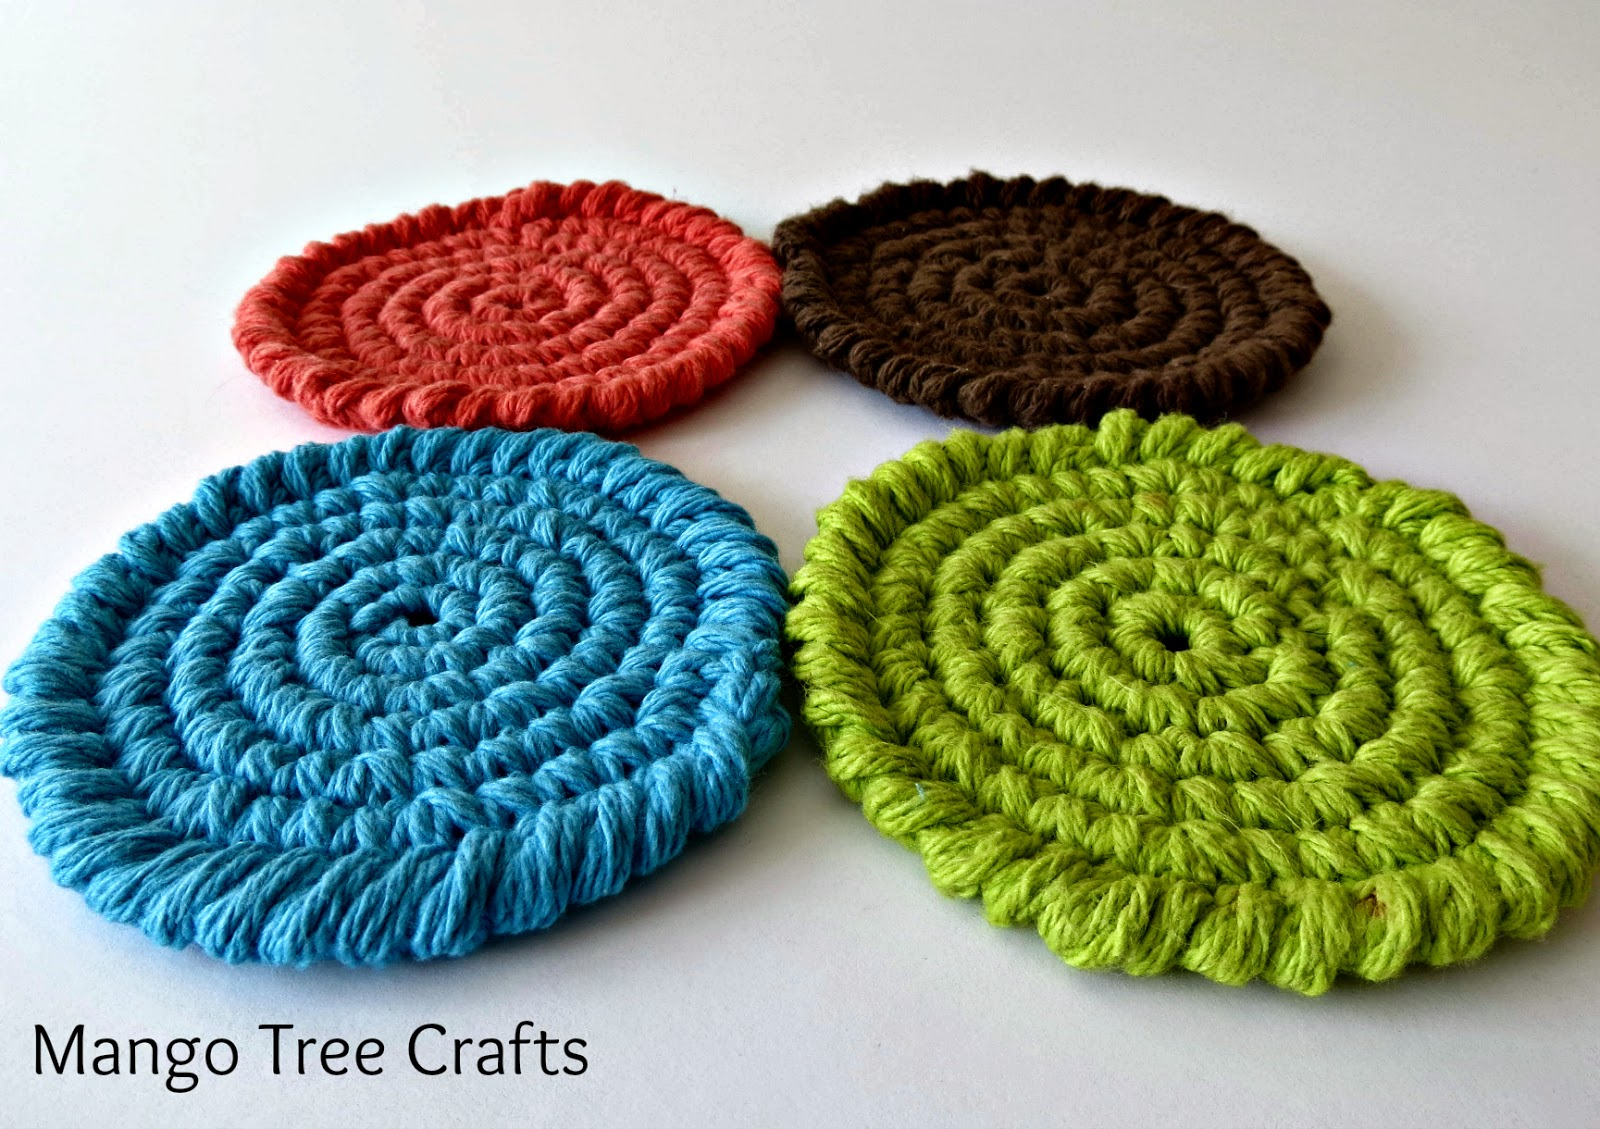 Free Crochet Pattern For Coaster : Mango Tree Crafts: Free Crochet Coasters Pattern